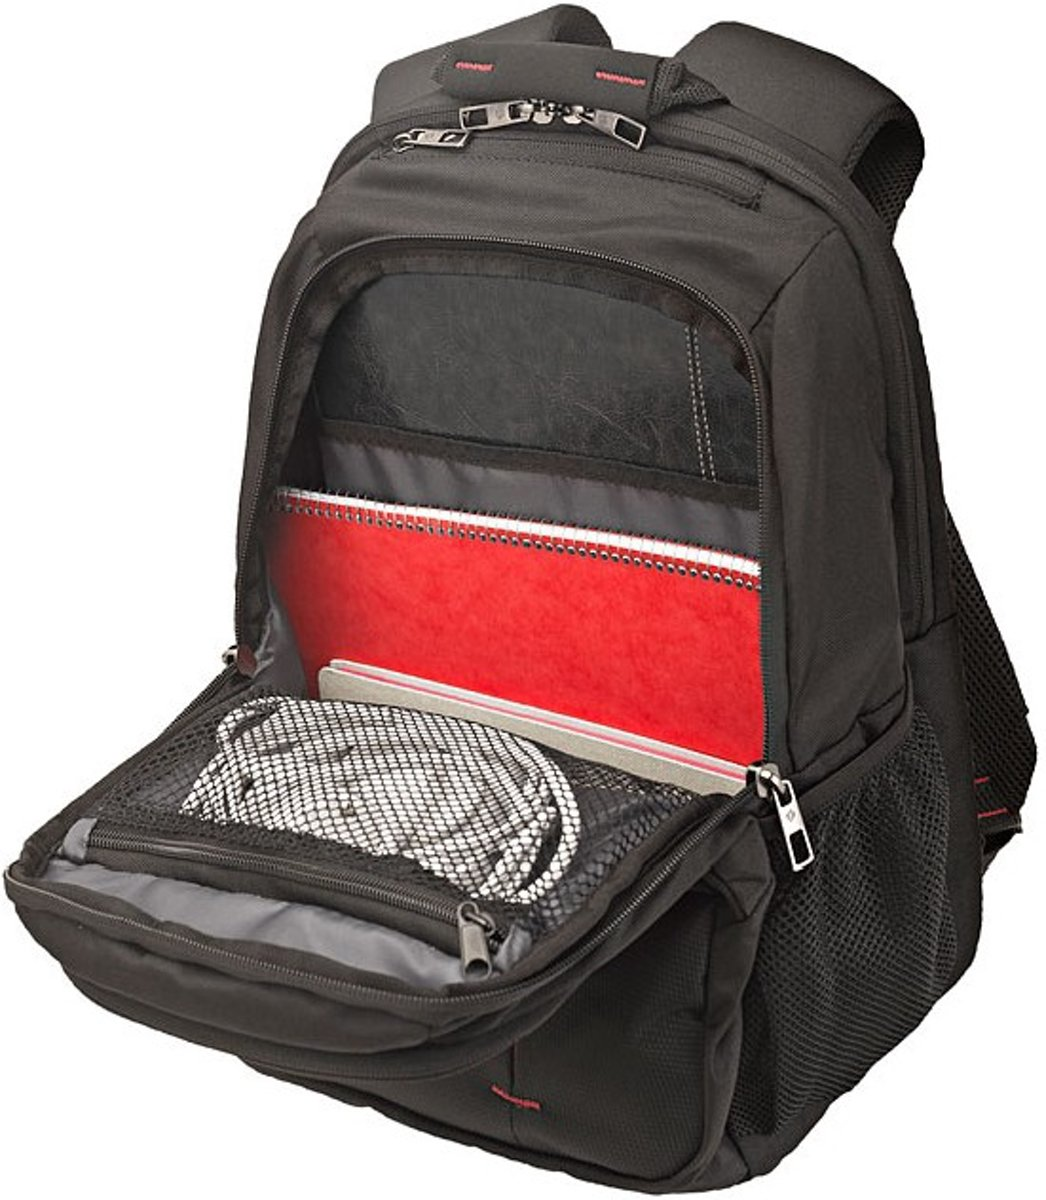 8b87c00be29 Samsonite Guardit 2.0 Laptop Backpack | The Shred Centre